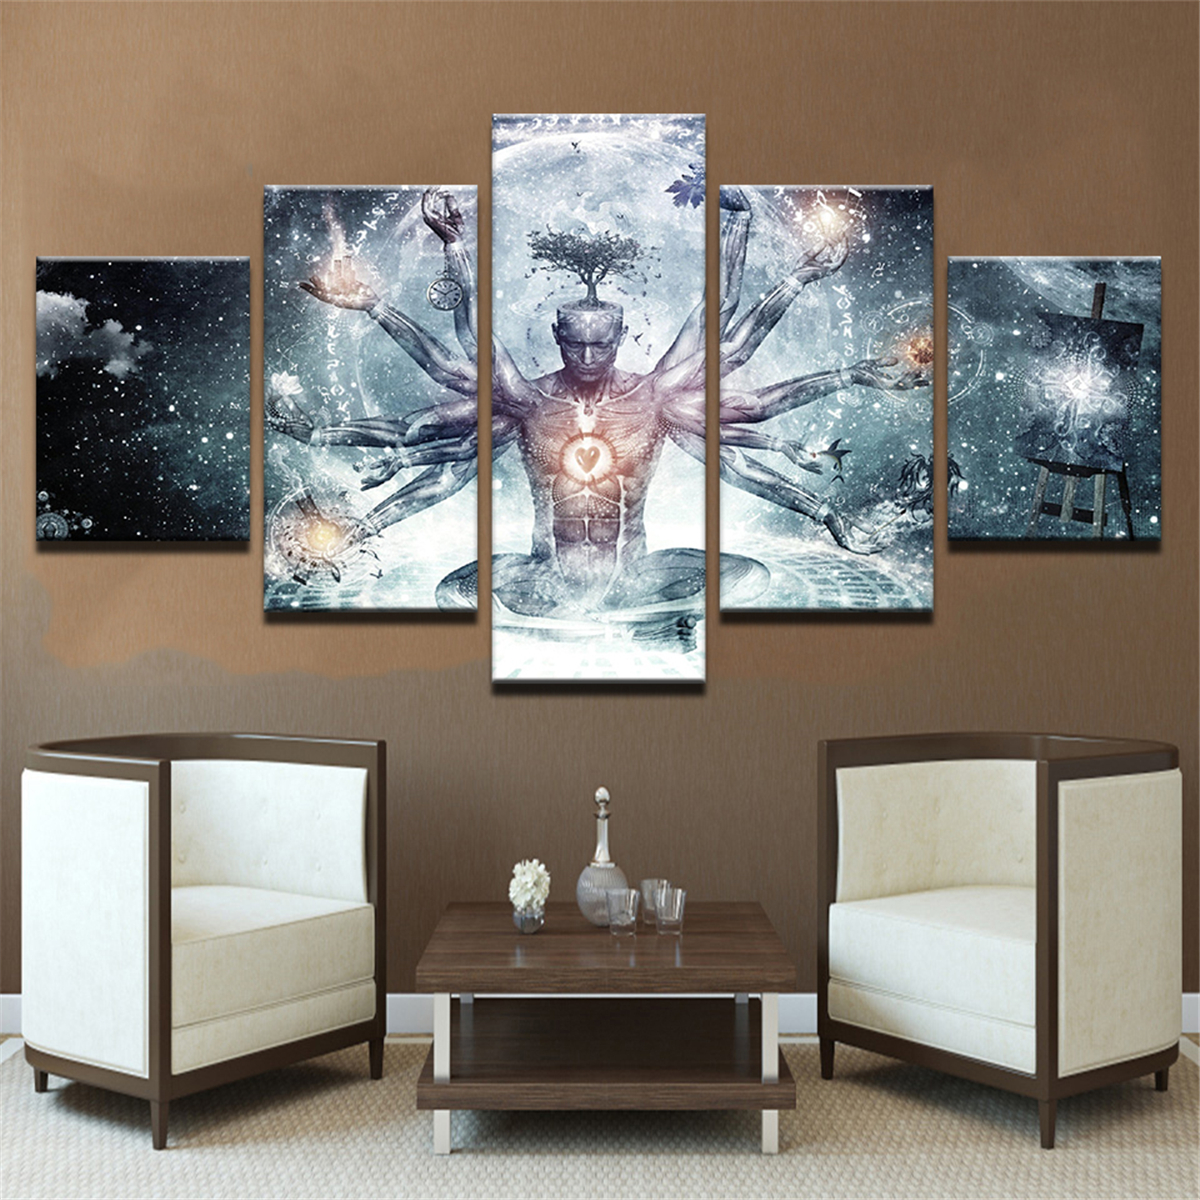 Unframed Thousand Hands Of Wise Men Modern Art Canvas Paintings Home Wall Decor